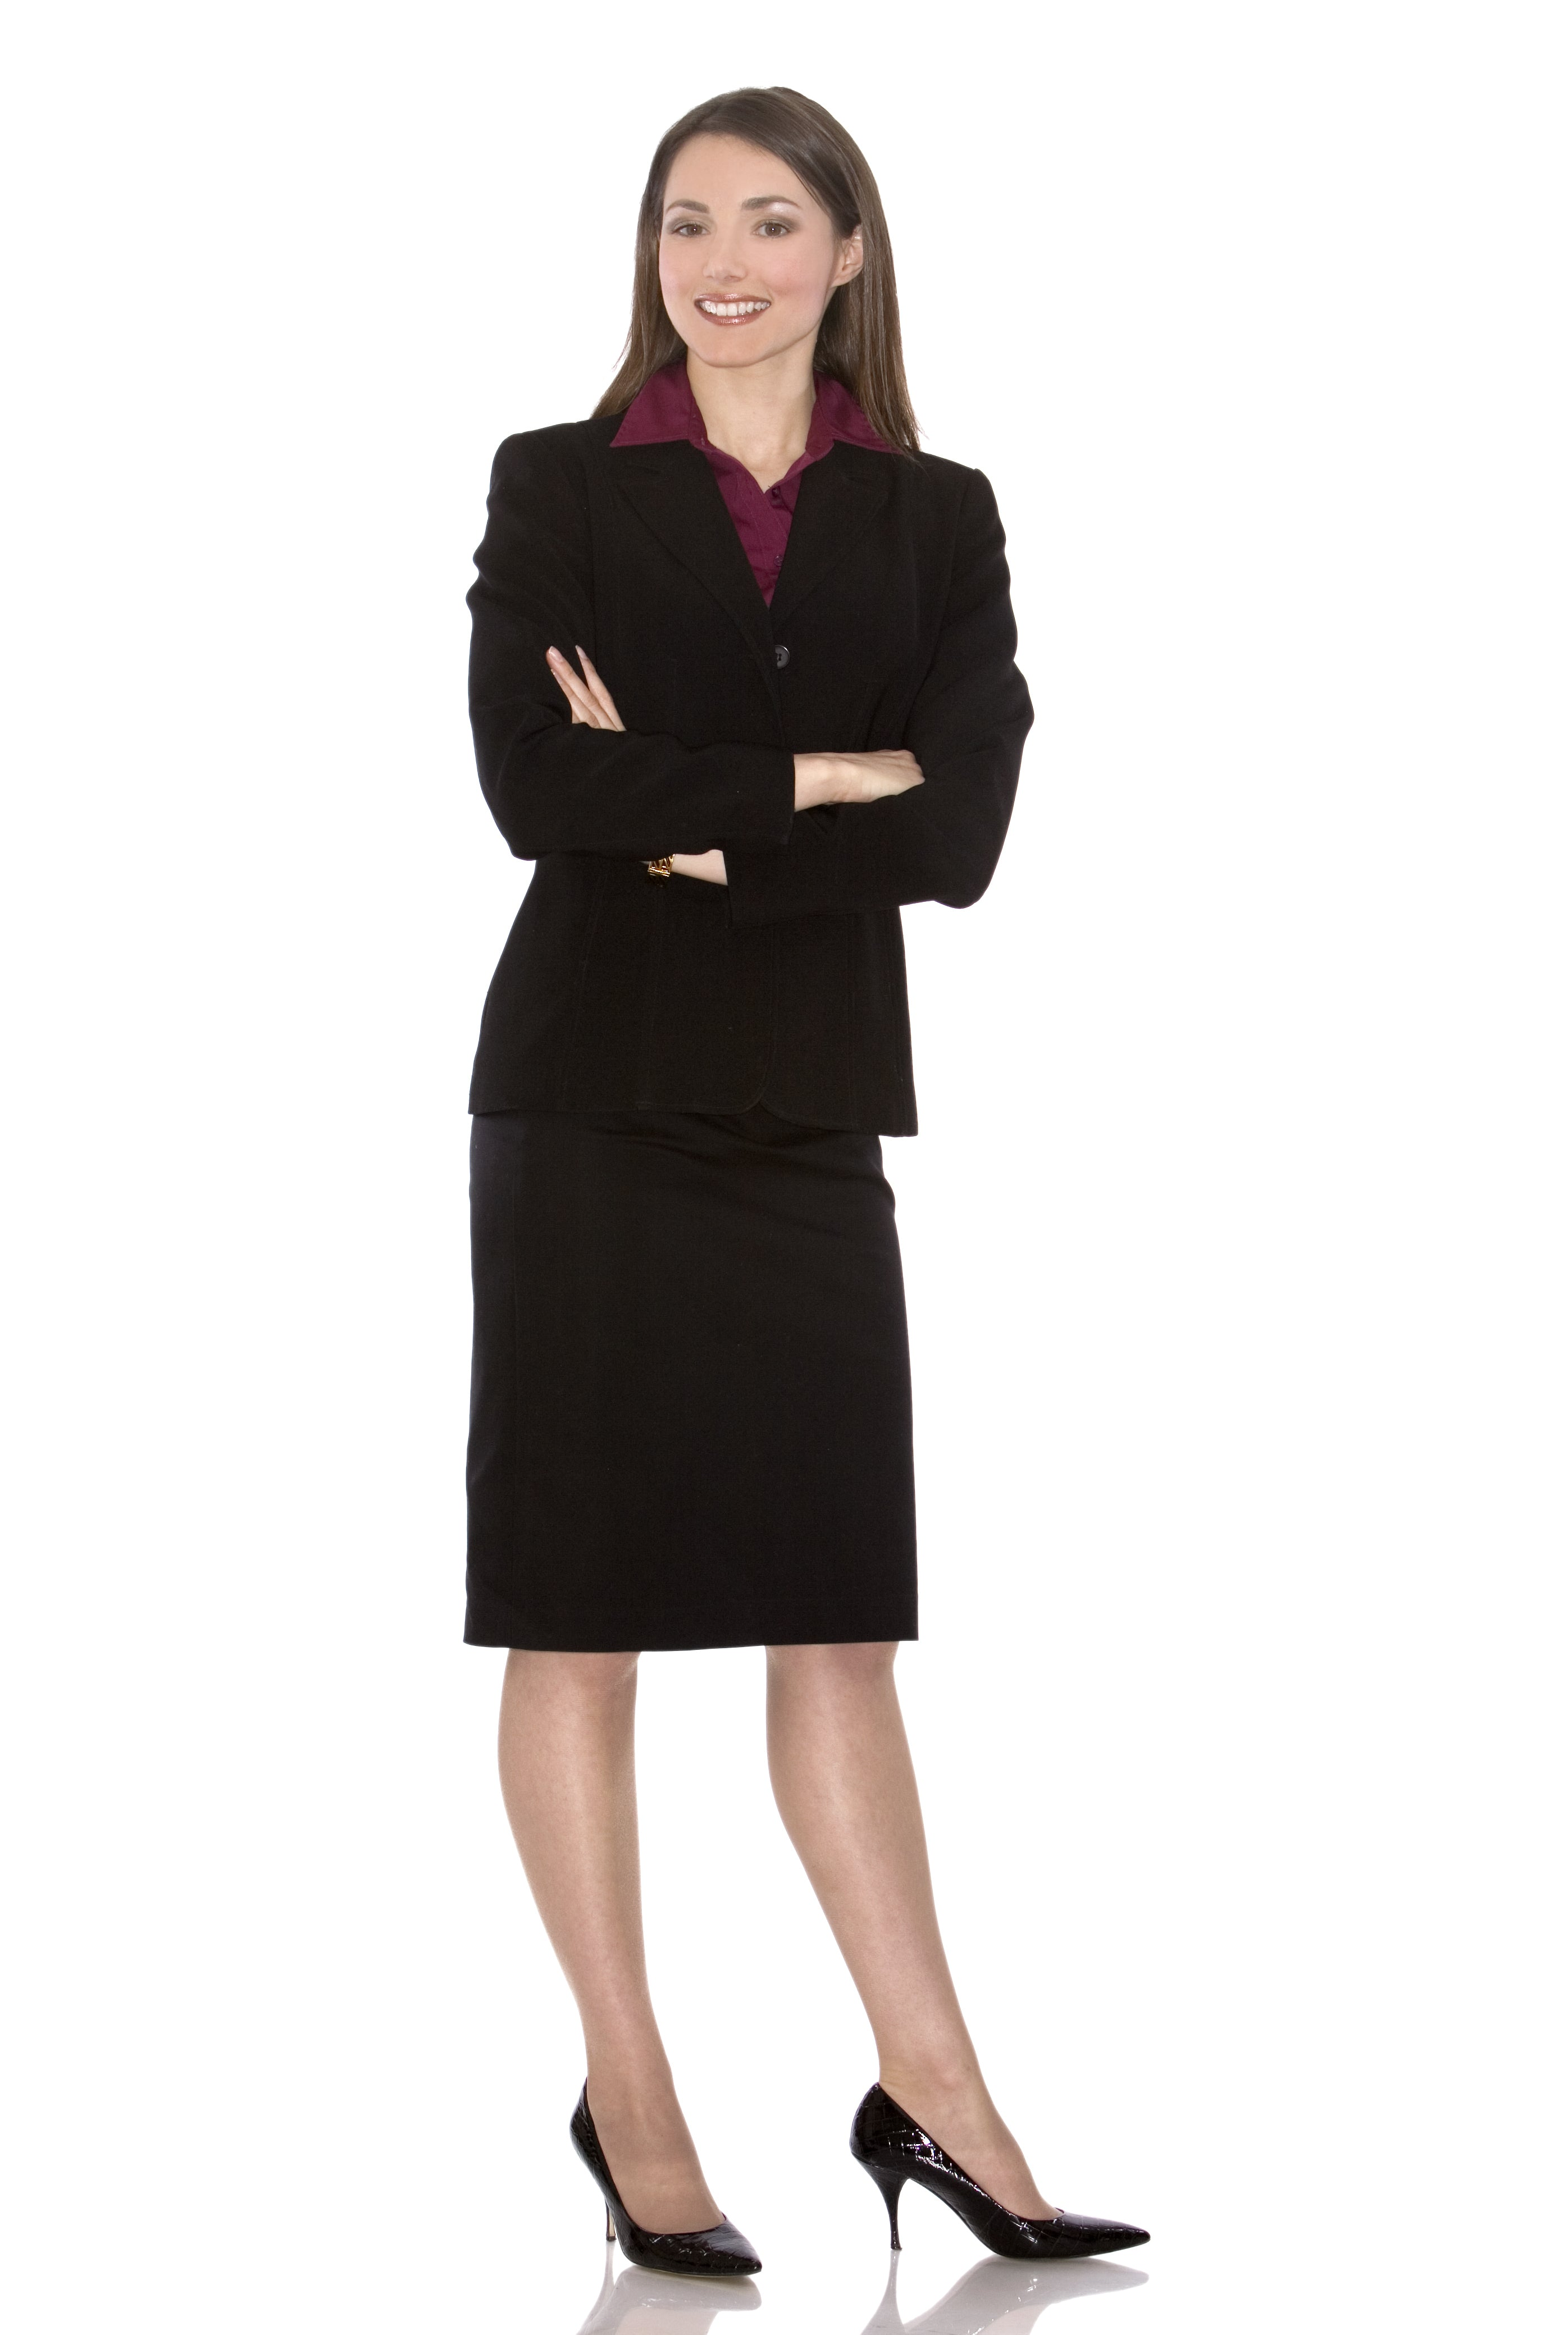 Woman with corporate attire